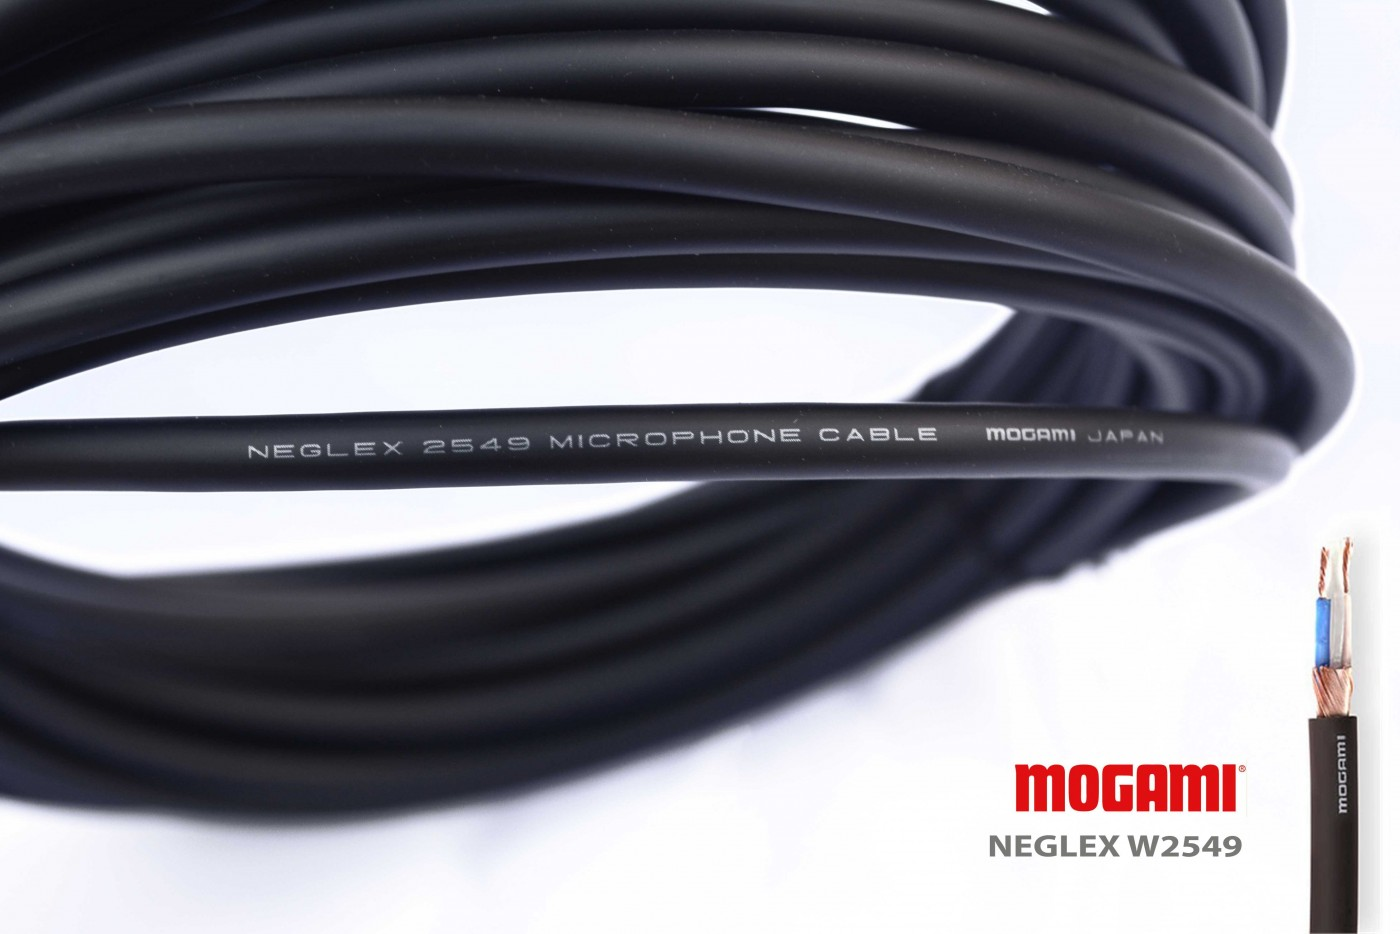 Mogami W2549 Cable Made In Japan Ideal For Xlr And Rca Style To Wiring Interconnects Sold By The Foot